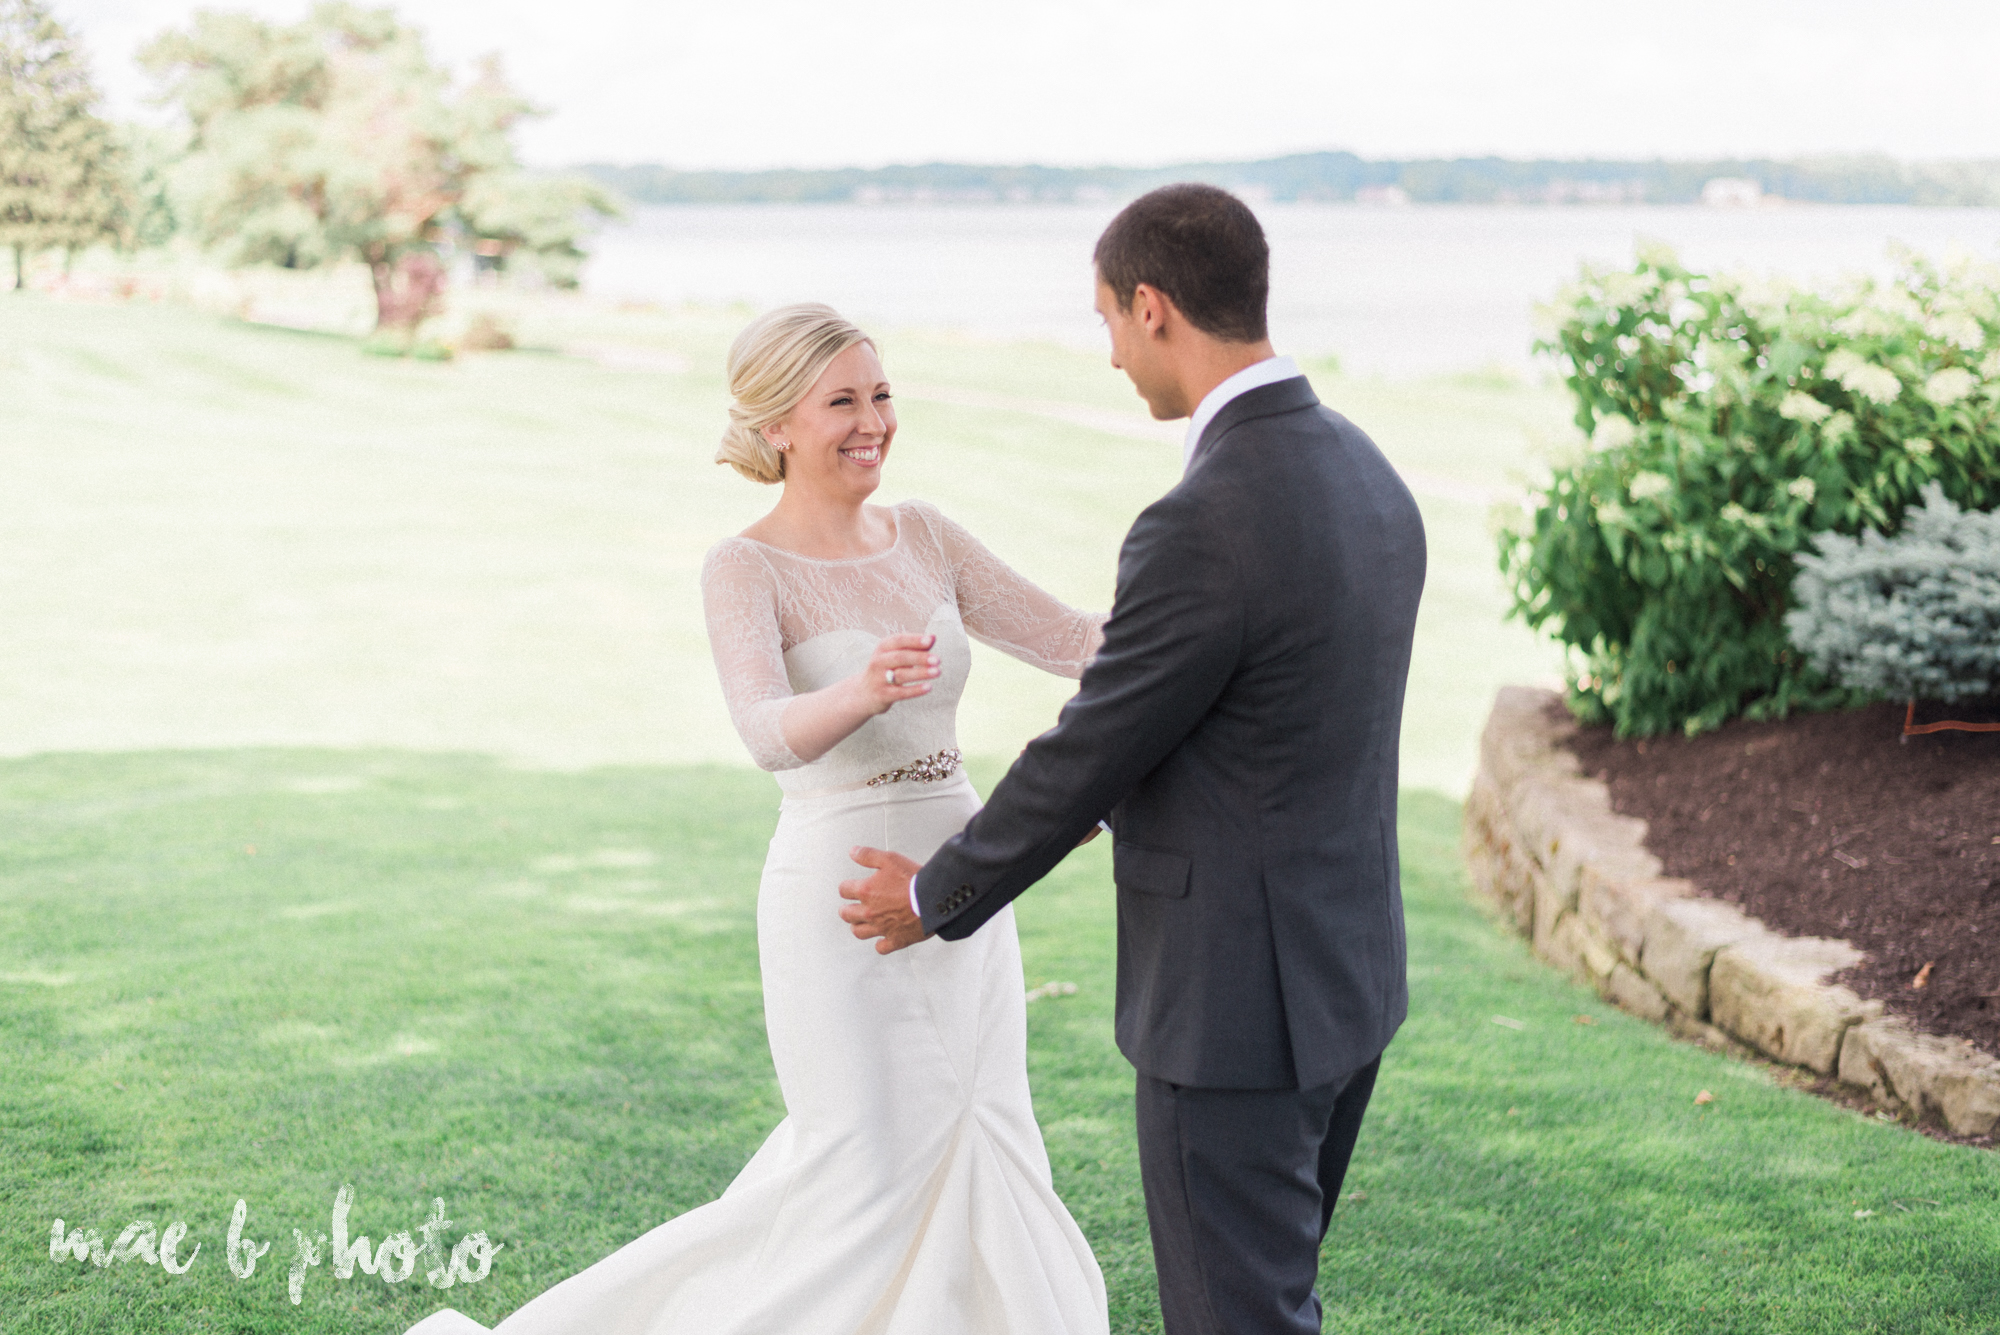 emily and michael's industrial chic summer country club wedding at the lake club in poland ohio photographed by cleveland wedding photographer mae b photo-49.jpg